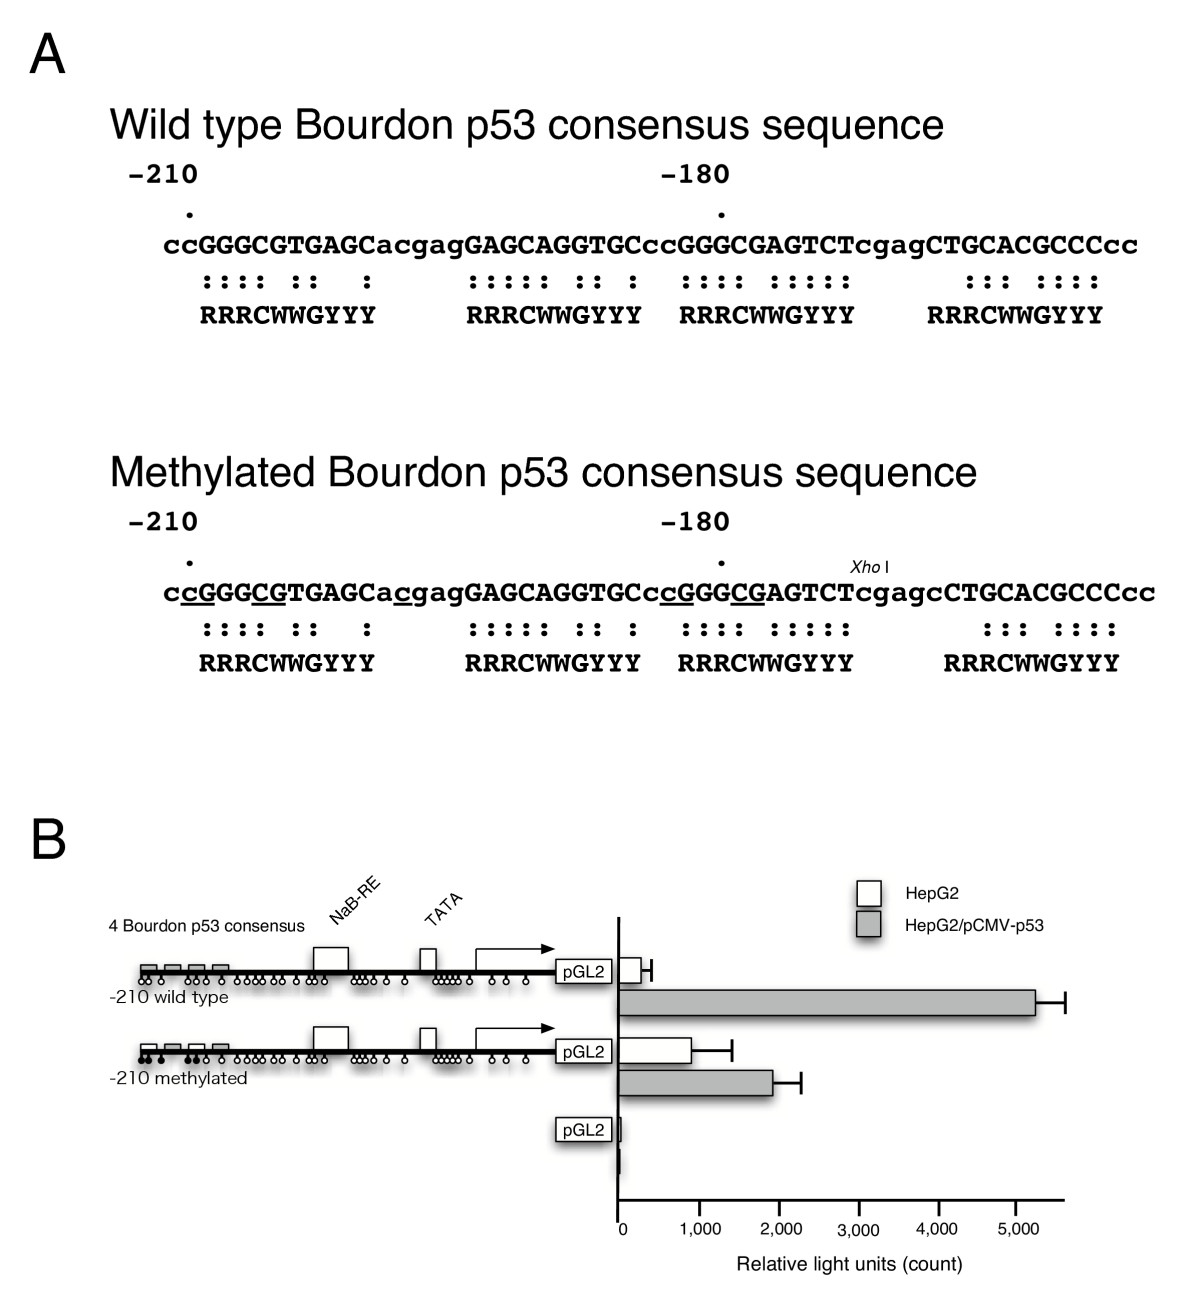 https://static-content.springer.com/image/art%3A10.1186%2F1471-2407-5-9/MediaObjects/12885_2004_Article_197_Fig4_HTML.jpg